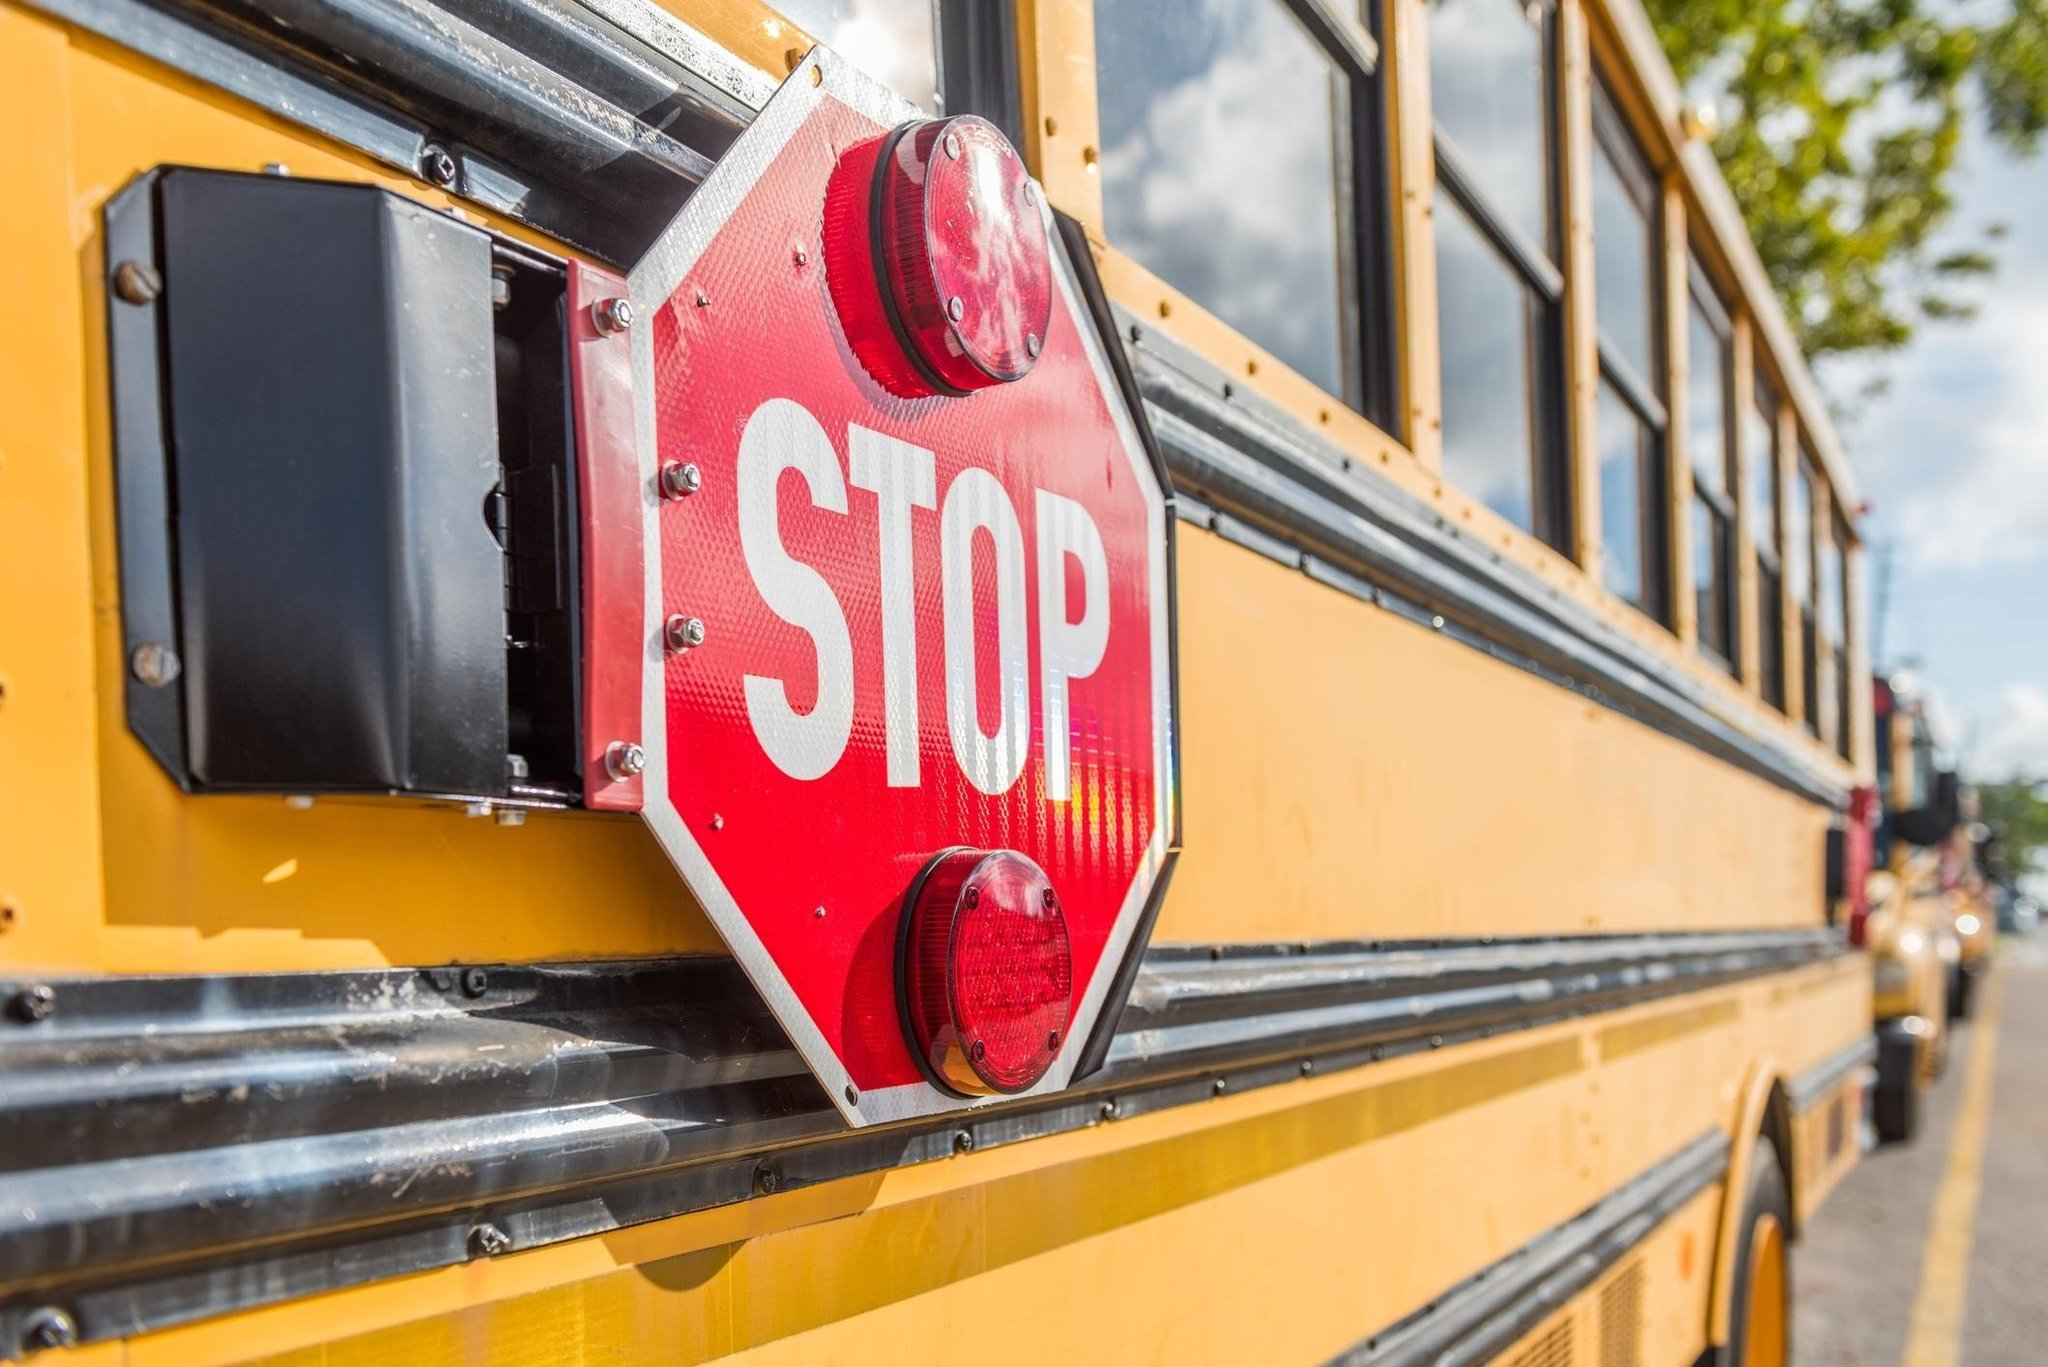 NYC school bus company drops 10-year-old with autism at wrong school, neglects to inform parents, says mom